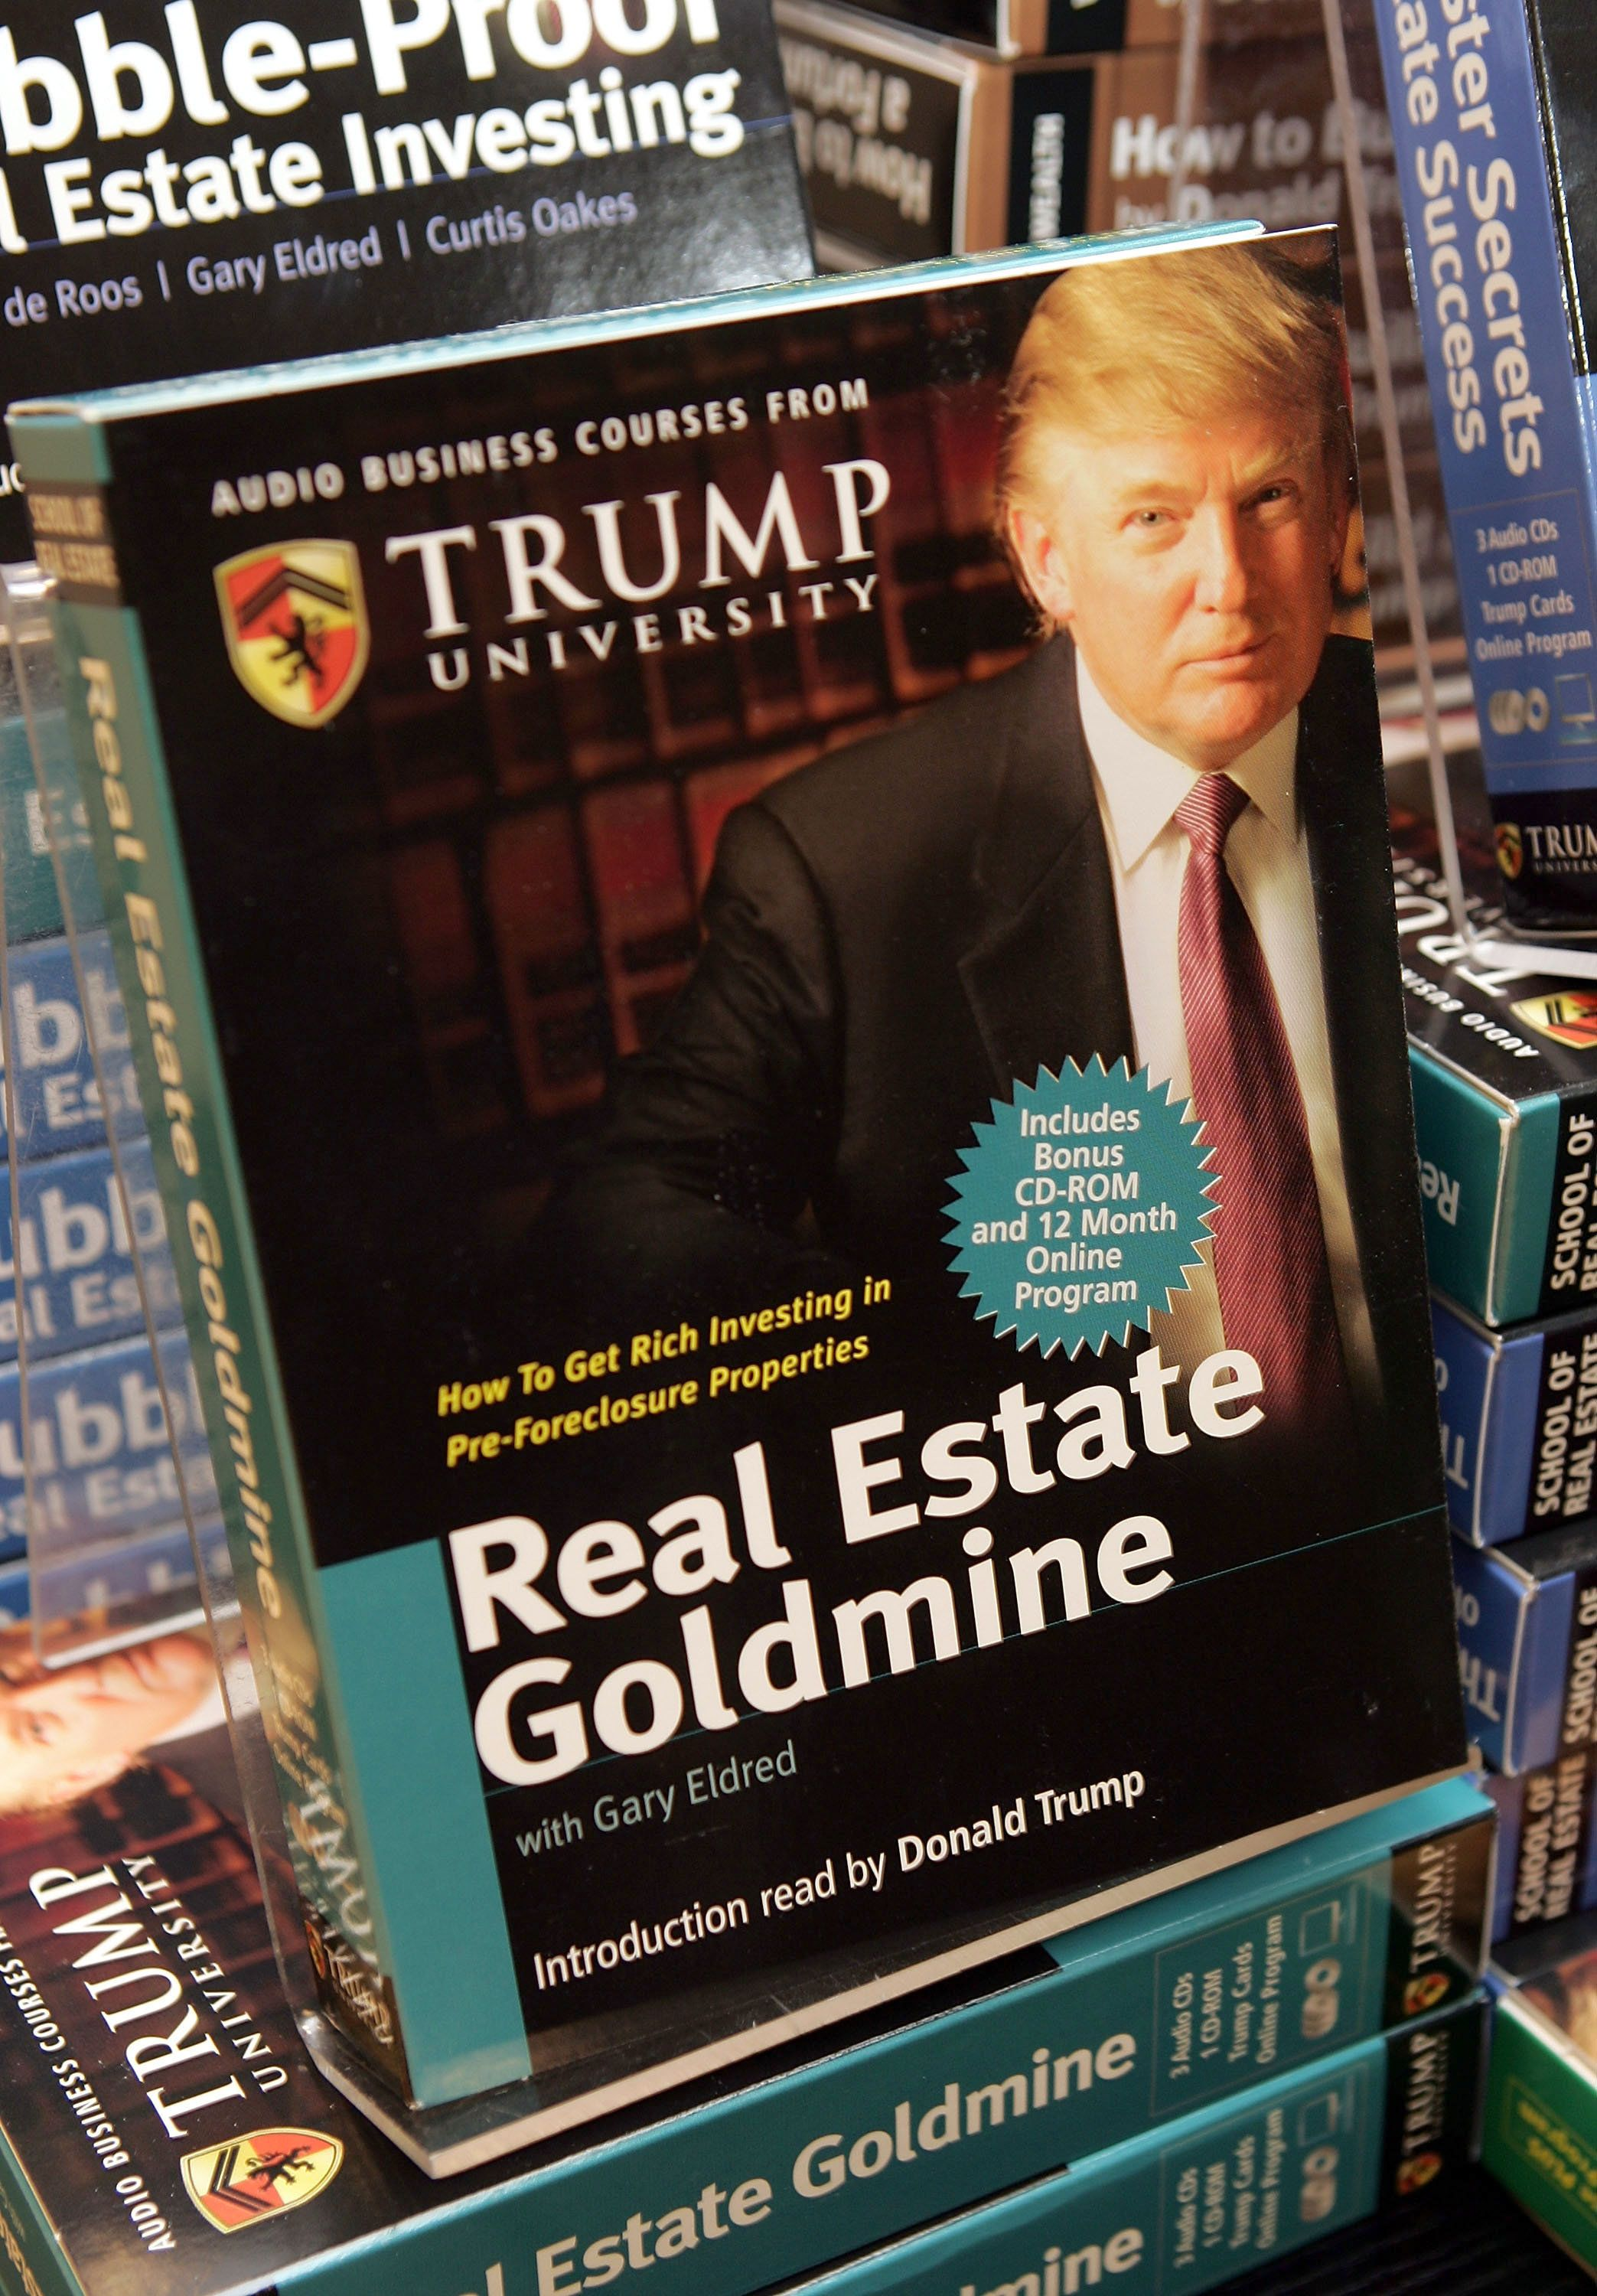 Copies of the Trump University's <i>How to Build Wealth</i> at a Barnes & Noble store in 2005 in New York City.